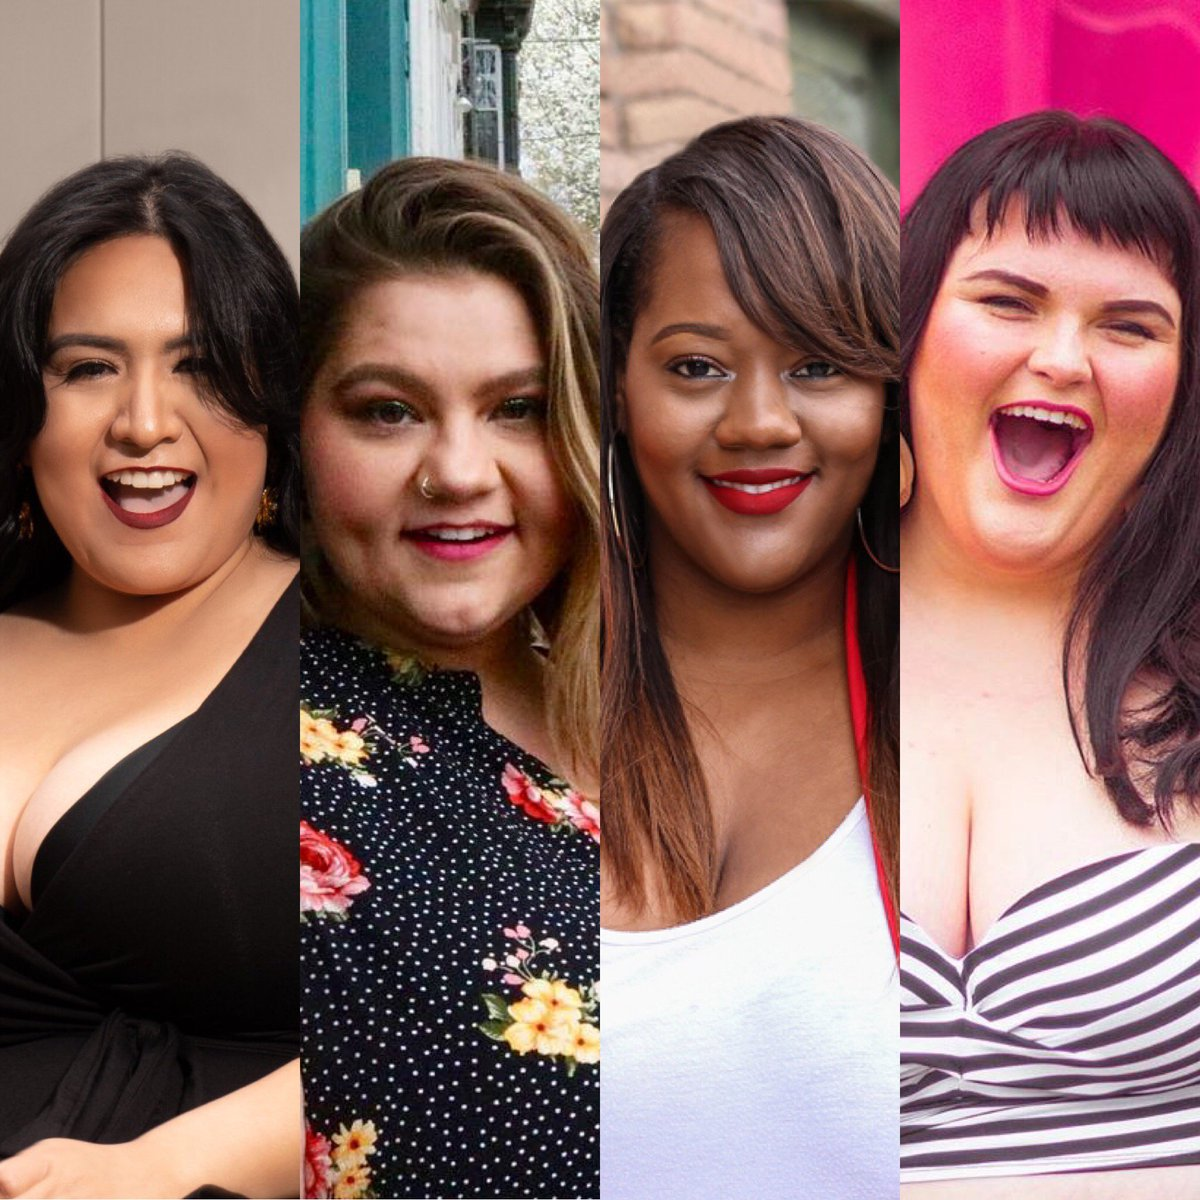 c3aeb29dc6b ... Should Be Following: http://www.thecurvylist.com/media/10-plus-size -bloggers-you-should-be-following/ … @ladivina_latina @plussizenerd  @PrissyMissyDoll ...